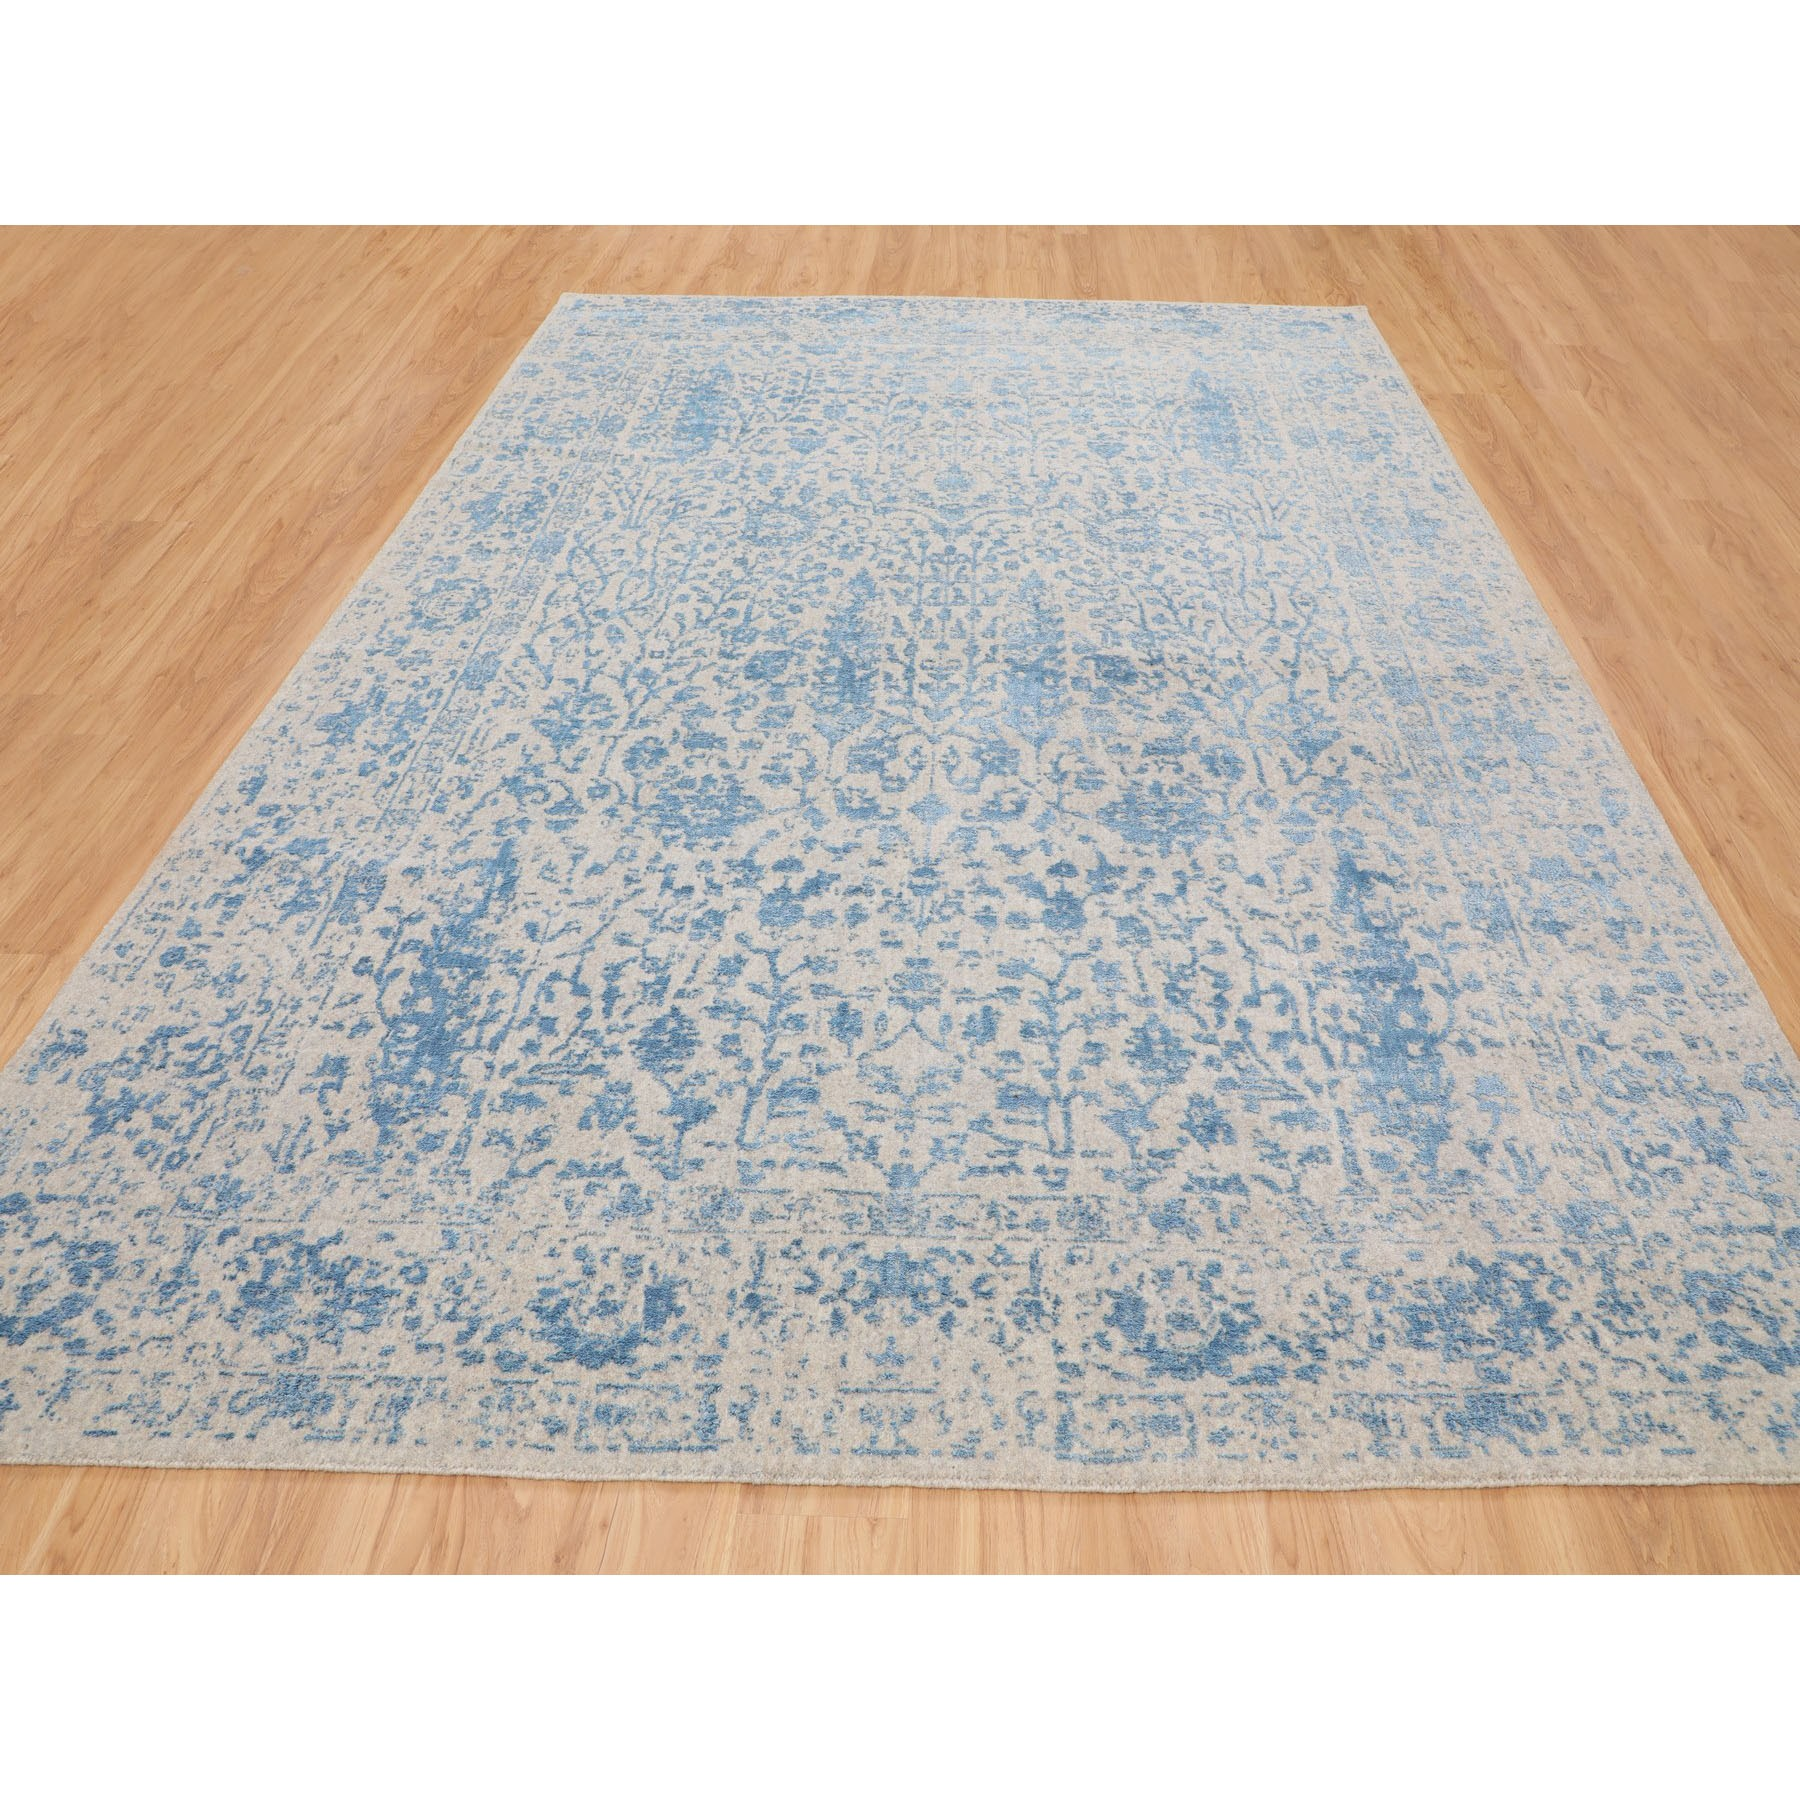 8-10 x12-2  Blue Fine Broken Cypress Tree Design Wool And Art Silk Thick Hand Loomed Oriental Rug